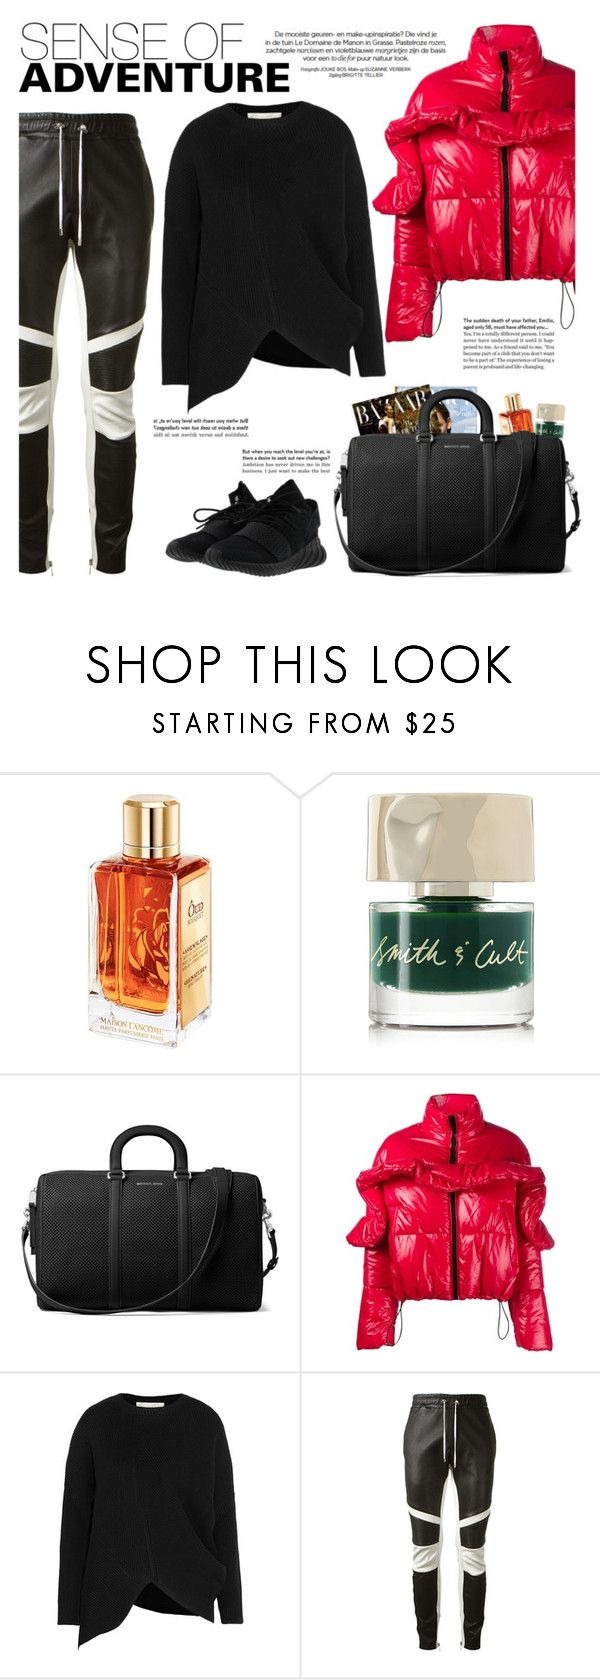 """How to Style a Red Puffer Jacket with Black Leather Pants"" by outfitsfortravel ❤ liked on Polyvore featuring Smith & Cult, MICHAEL Michael Kors, MSGM, STELLA McCARTNEY, Balmain and adidas"